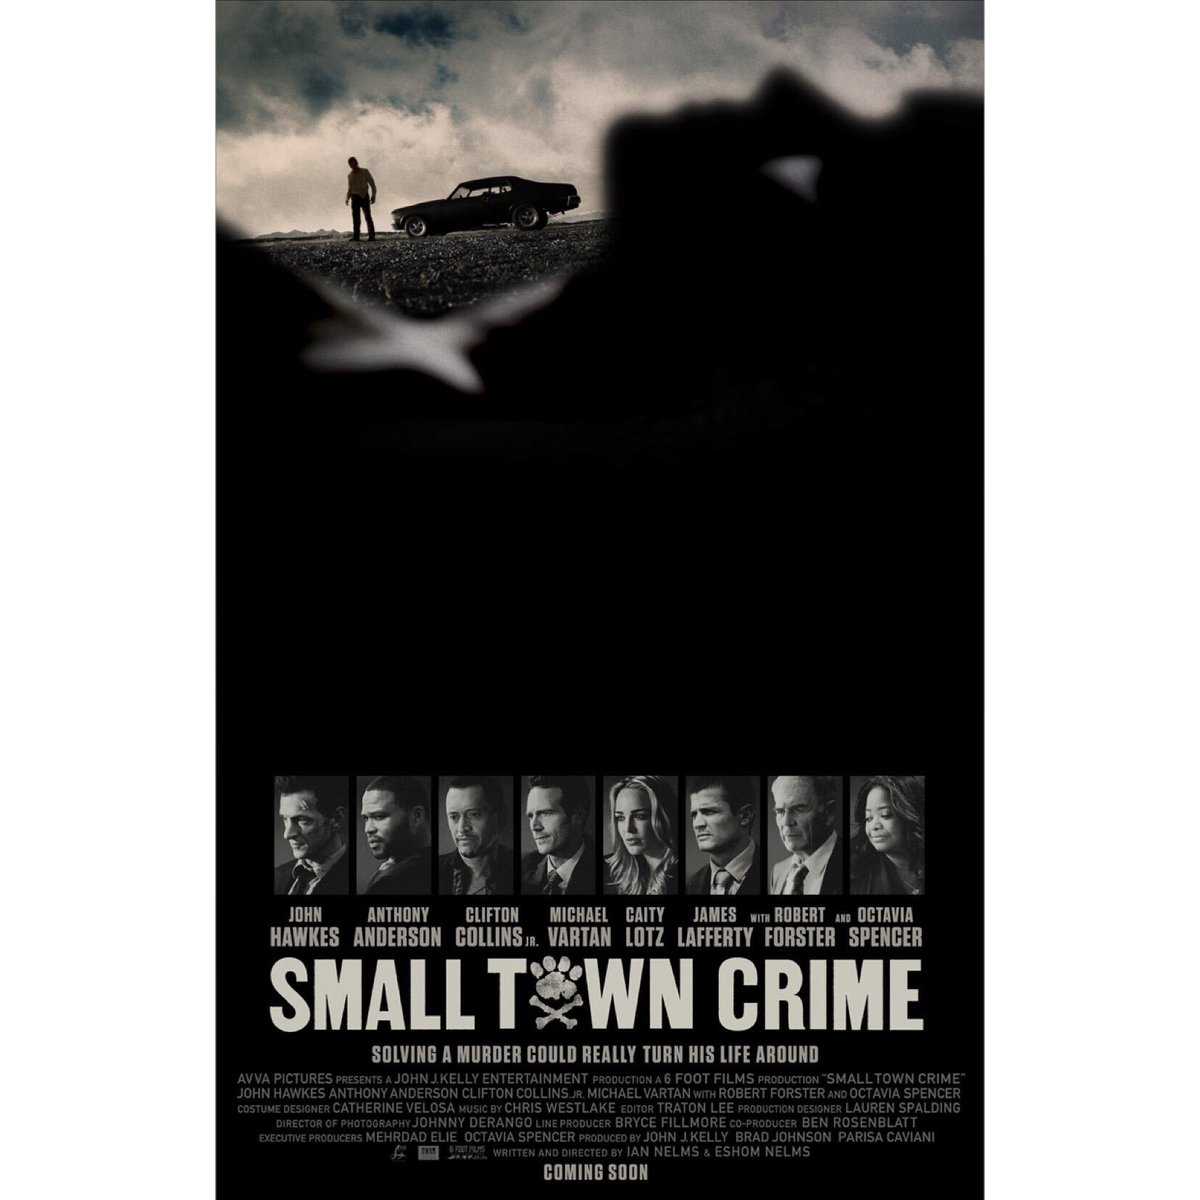 Small.Town.Crime.2017.1080p.WEB-DL.DD5.1.H264-FGT - Torrent - DCRGDizi.com